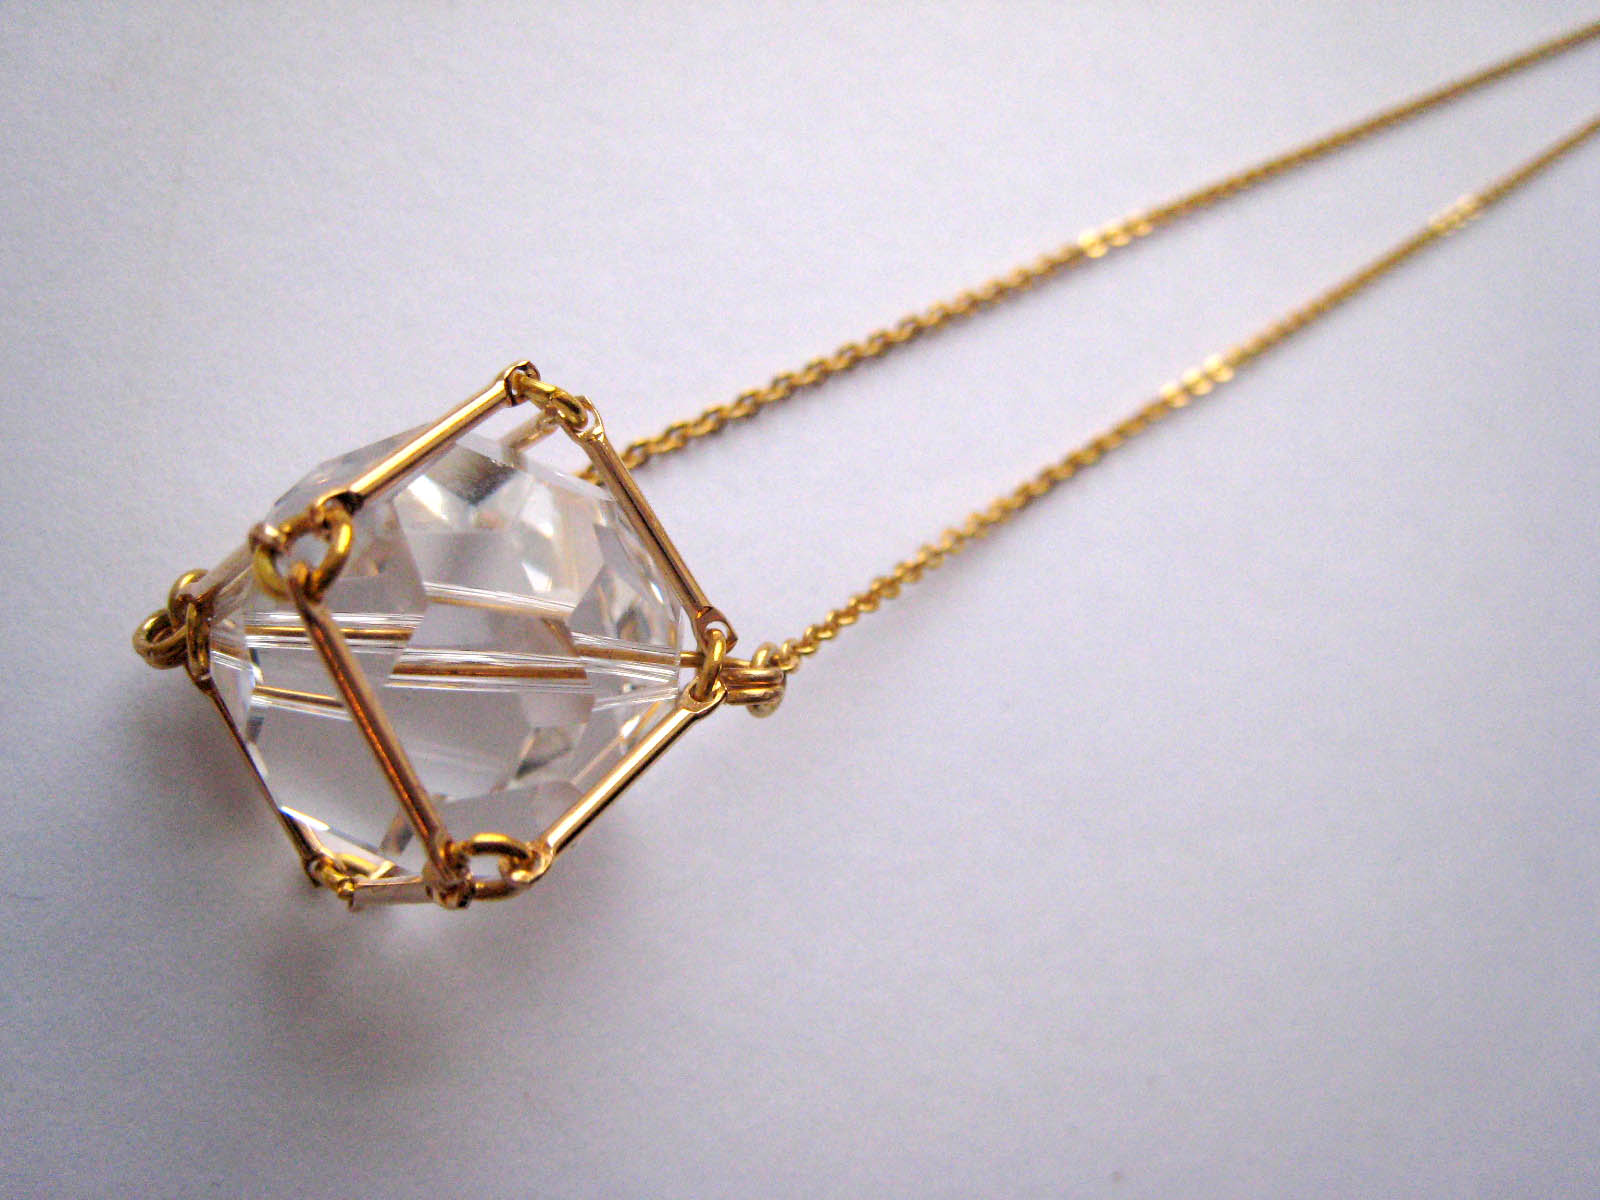 Lucy Hutchings - Mini Crystal Pendant bath stockist found boutique